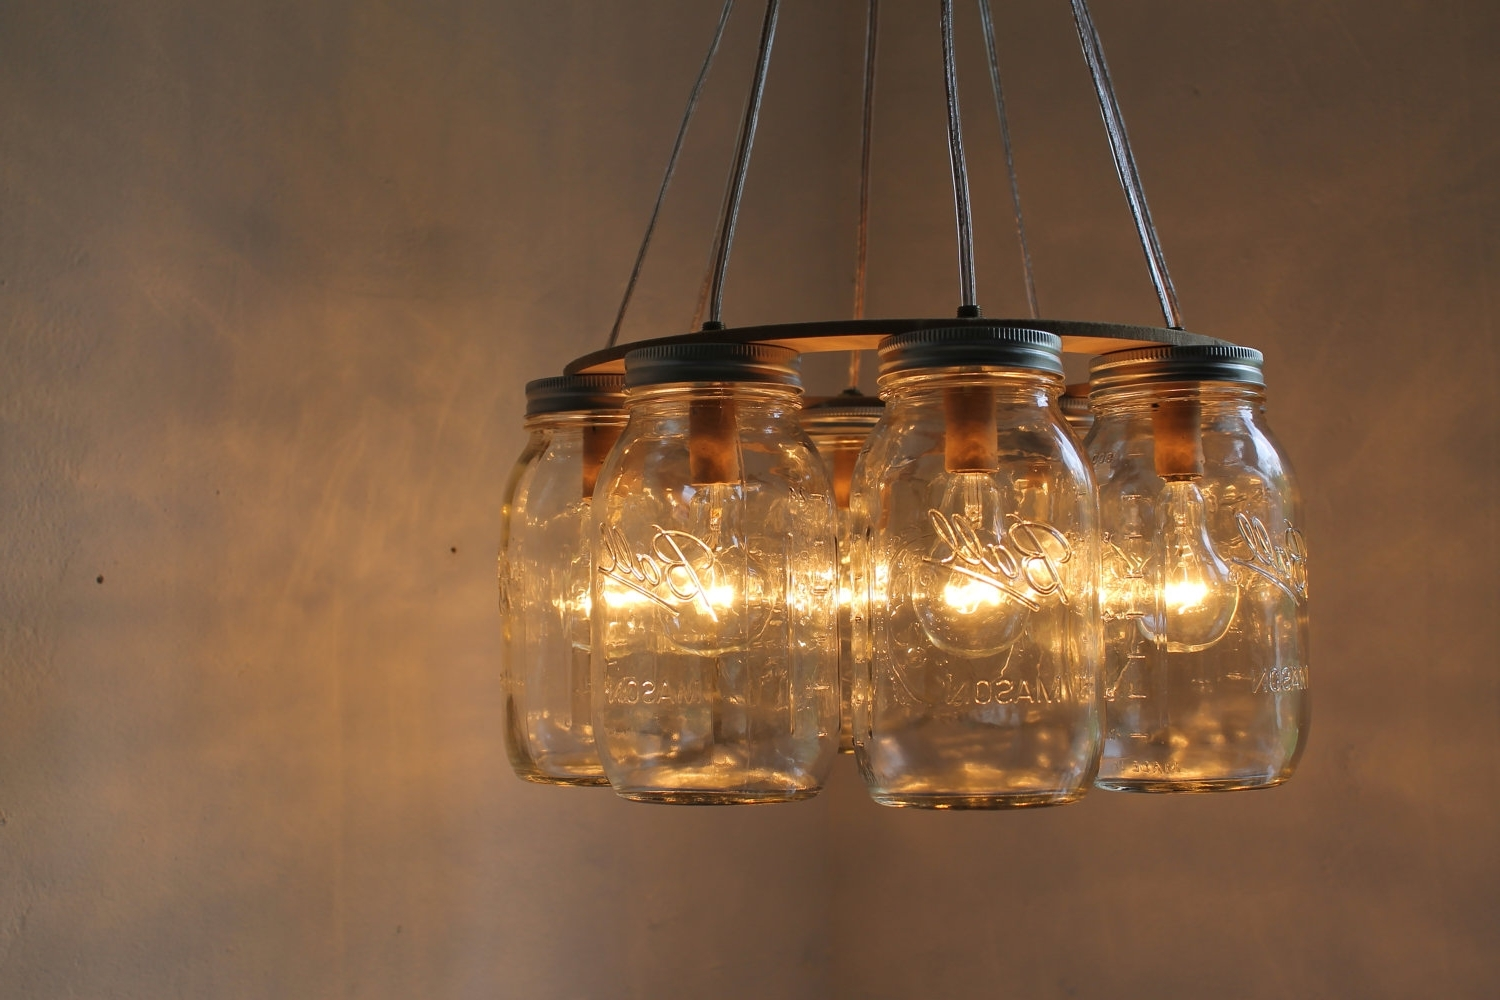 Preferred Small Rustic Lighting Fixtures : Rustic Lighting Fixtures Ideas For Small Rustic Chandeliers (View 11 of 20)